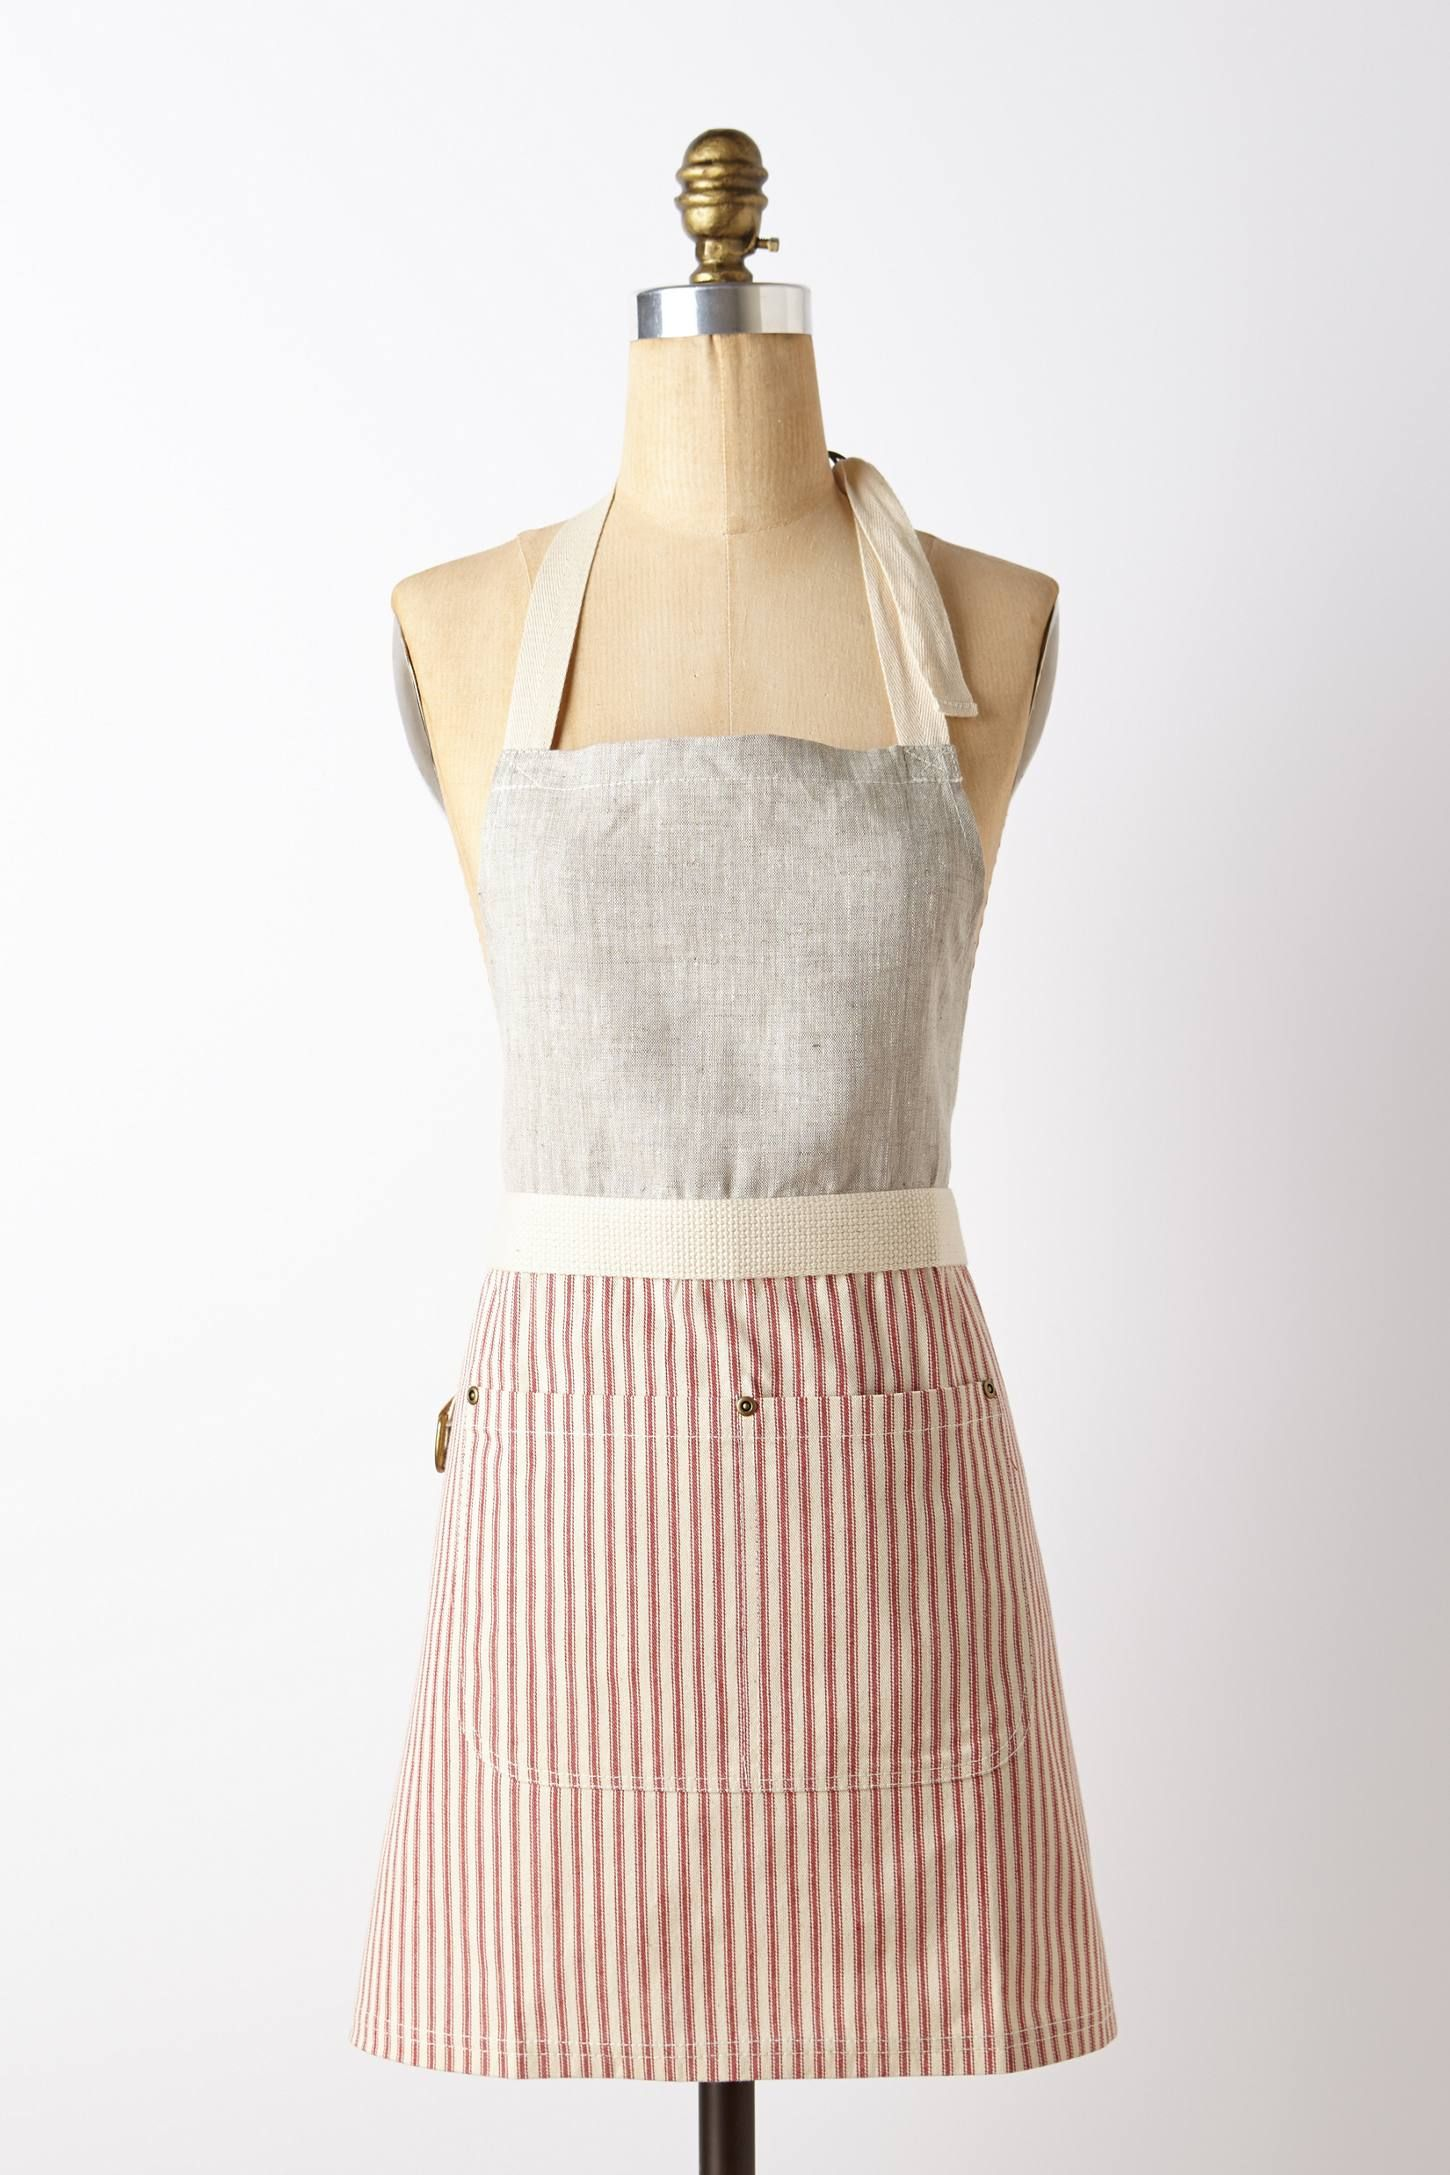 Breton apron in the kitchen for Anthropologie cuisine couture apron